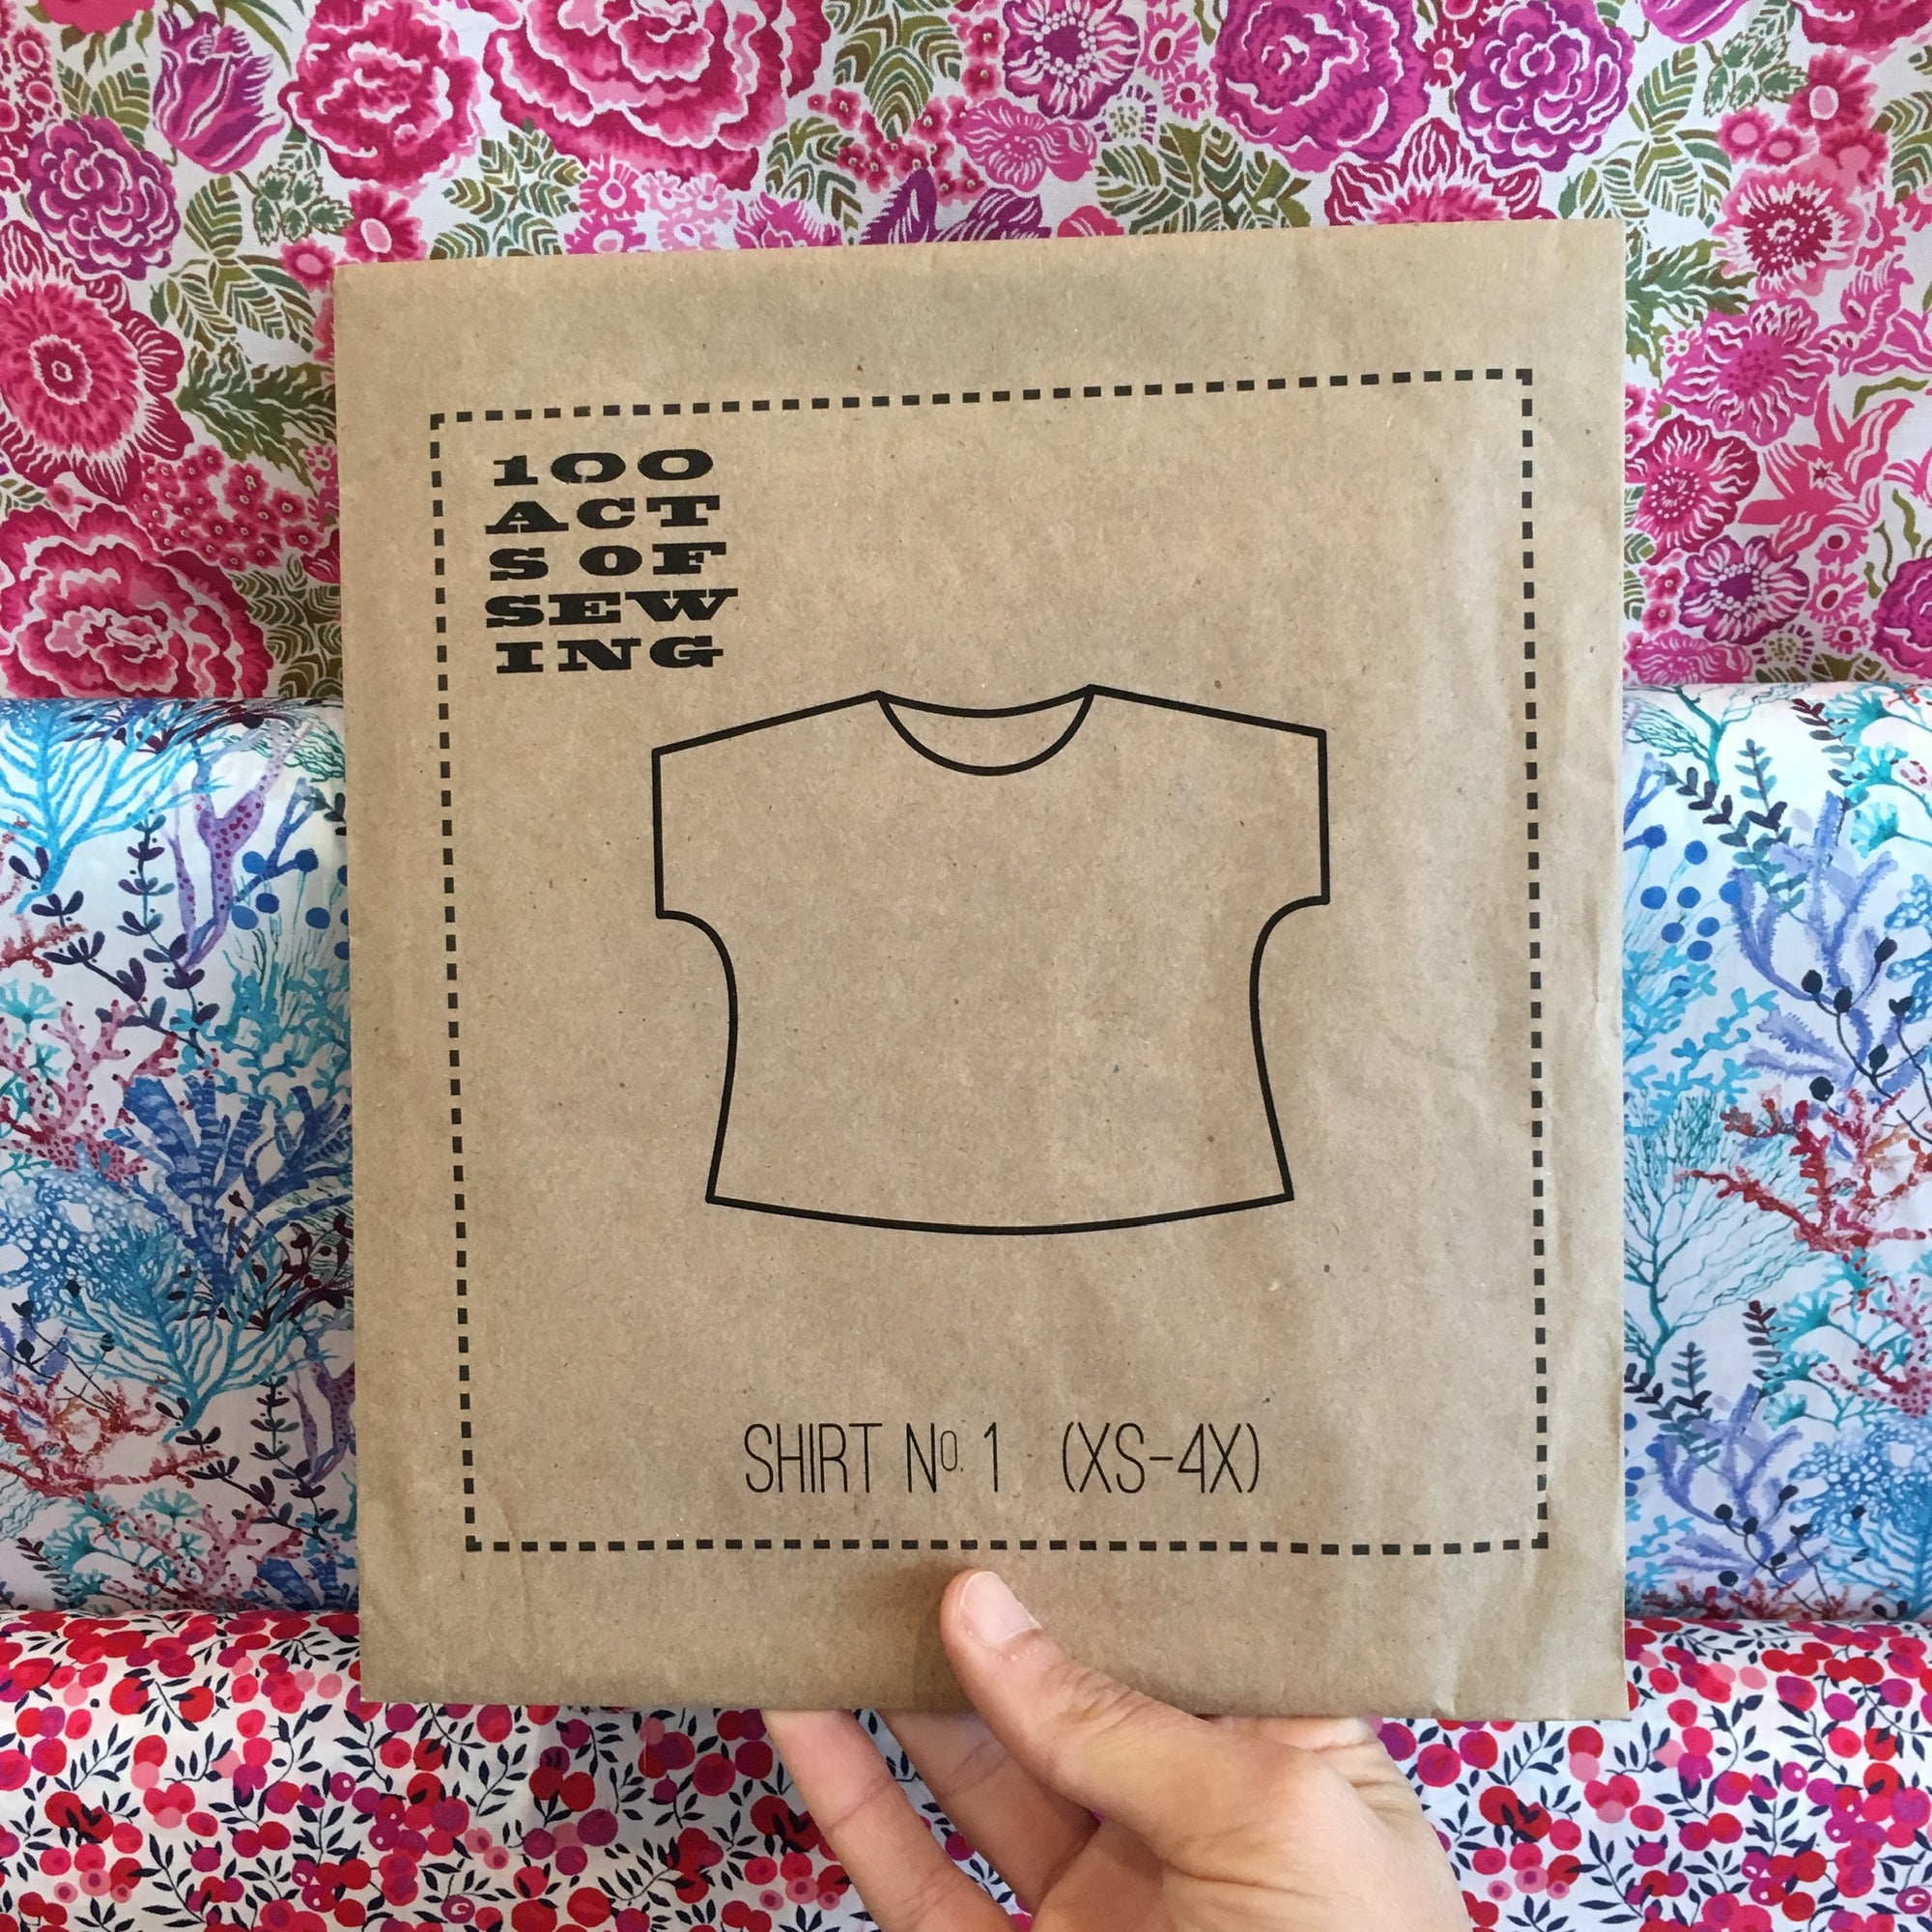 Garment 101: Shirt No. 1 - 07/13 + 07/27